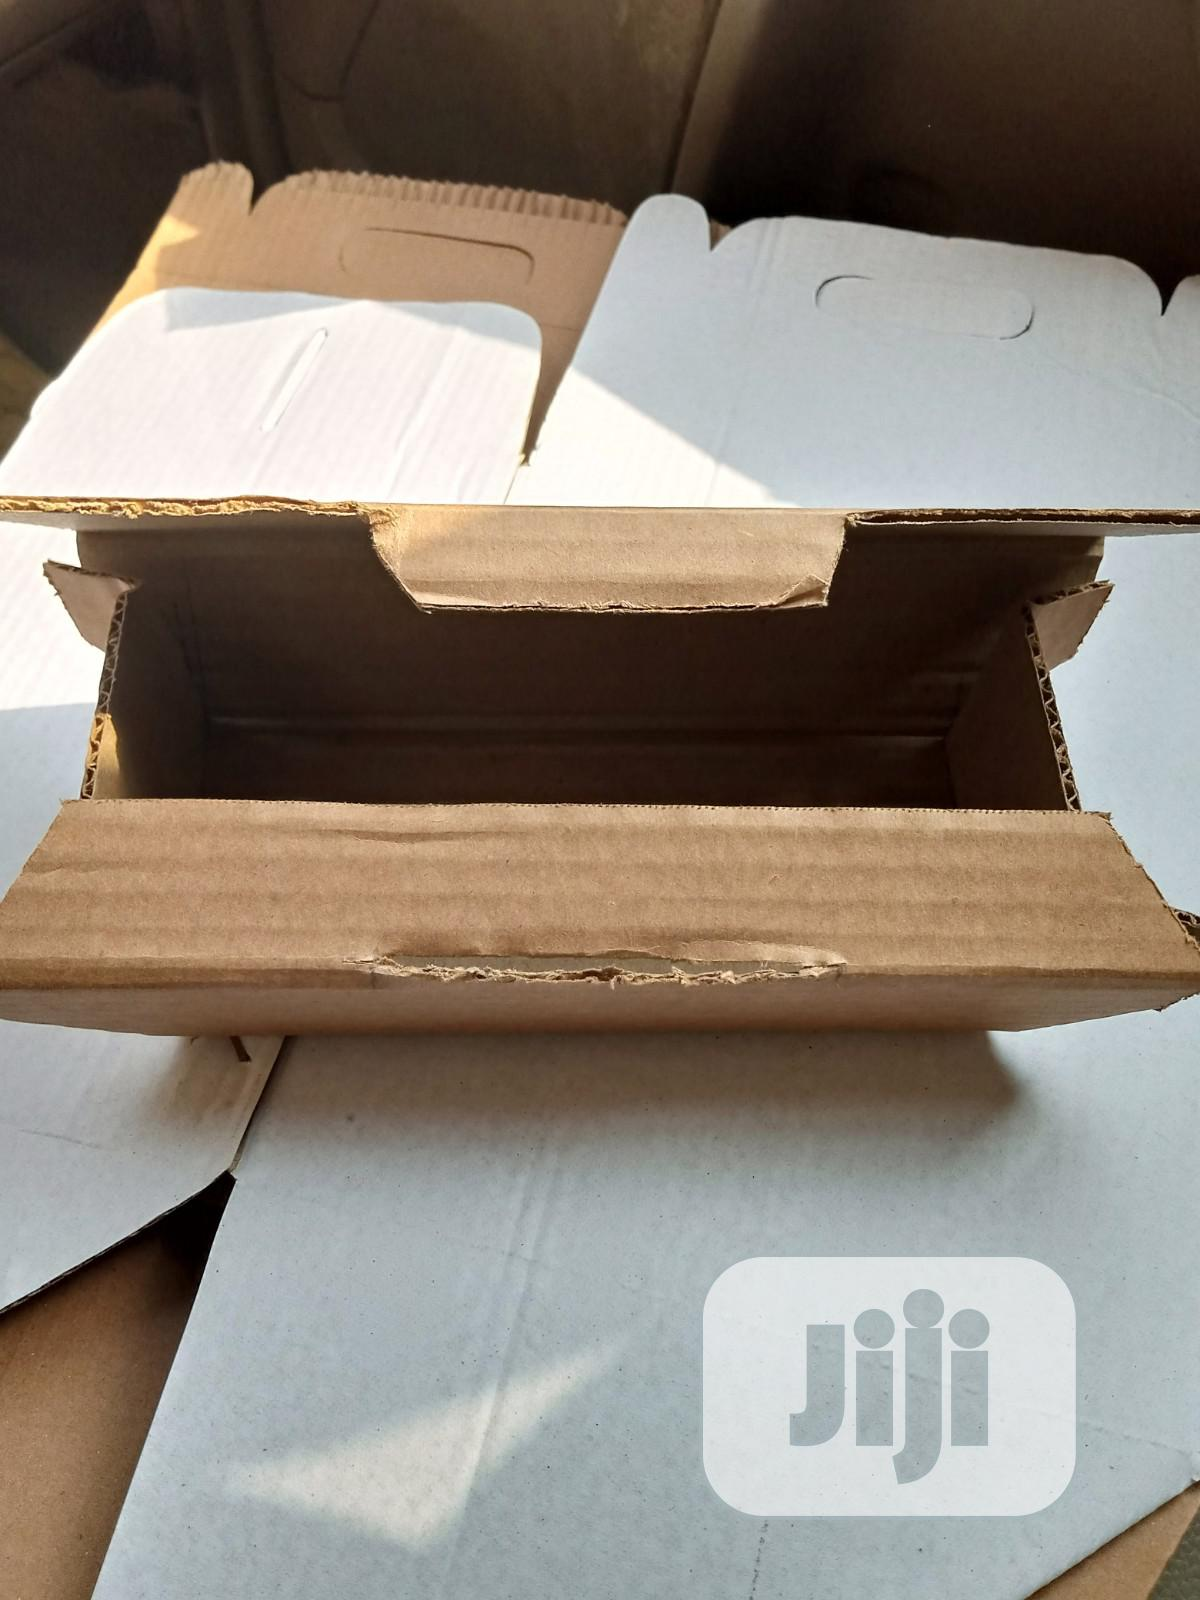 Archive: Takeaway Snacks Boxes For Grilled Fish, Smallchops, French Fries,